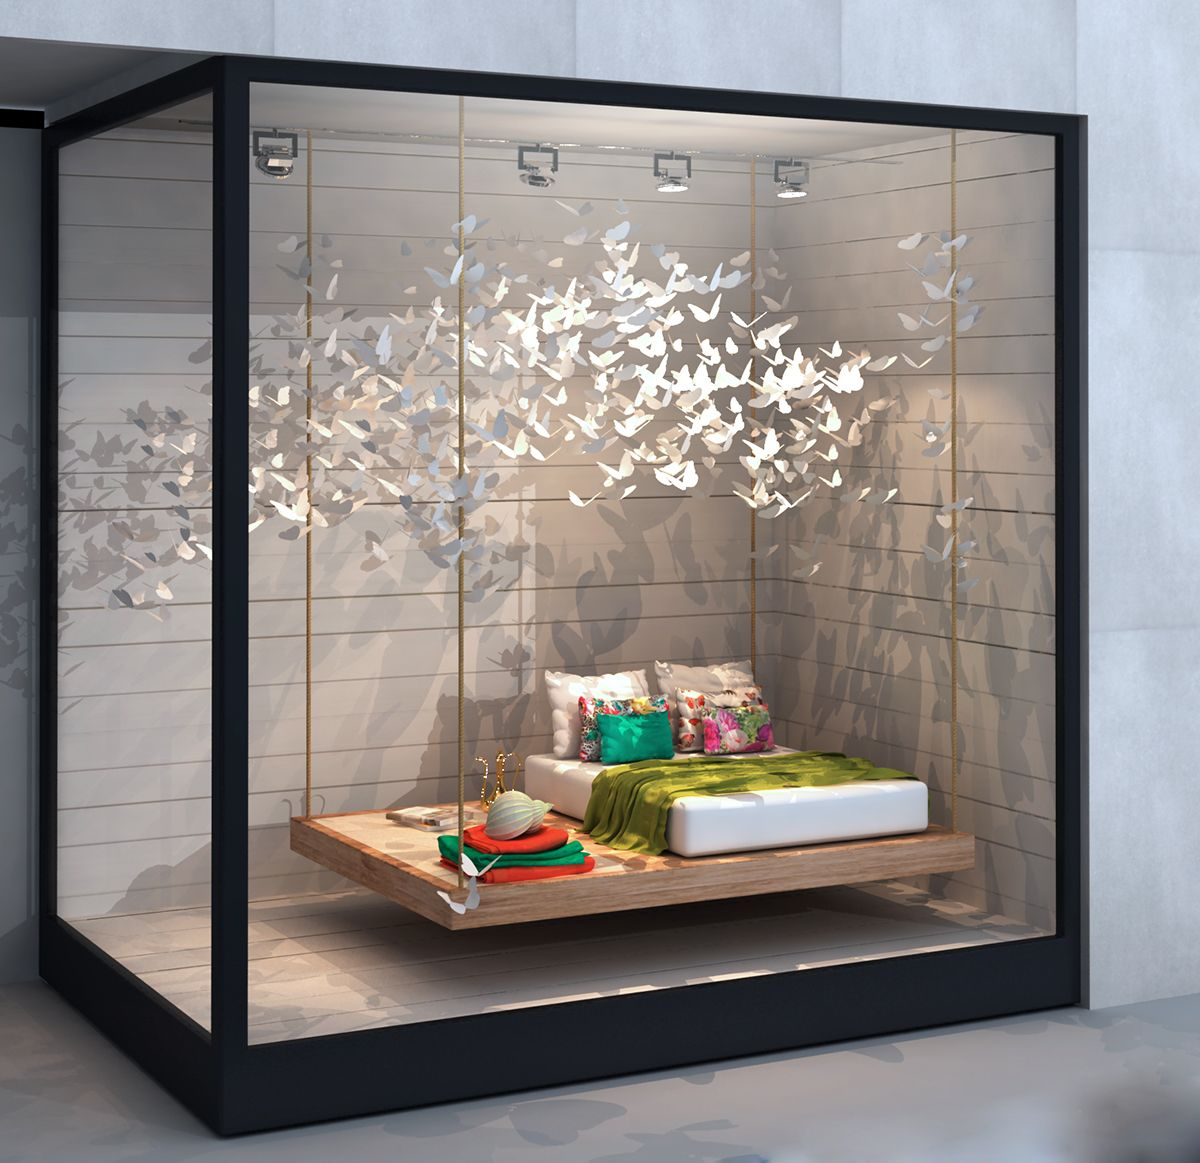 Zara home shop window vandadesigners retail visual www for Display bedroom ideas